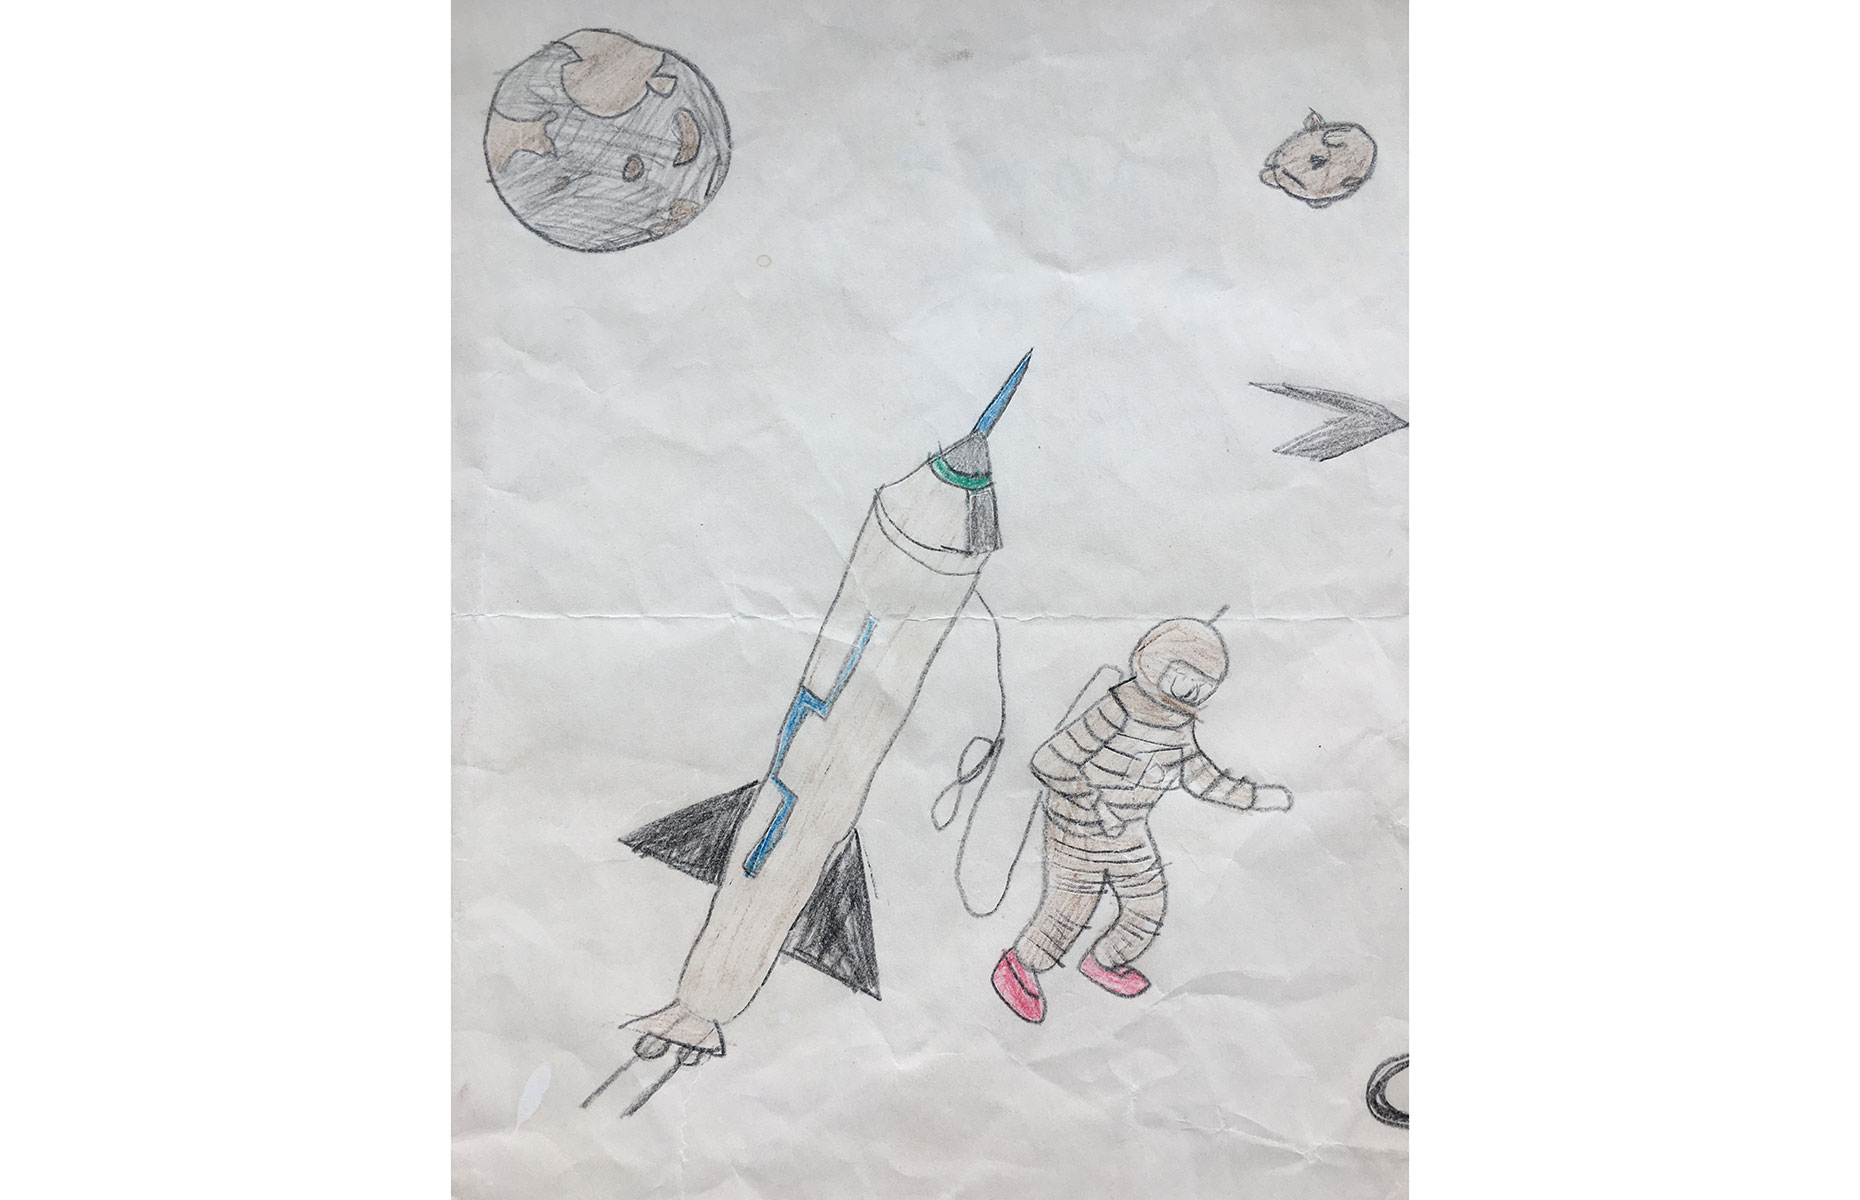 Astronaut Steve Smith's childhood drawing (Image: Courtesy of Steve Smith)